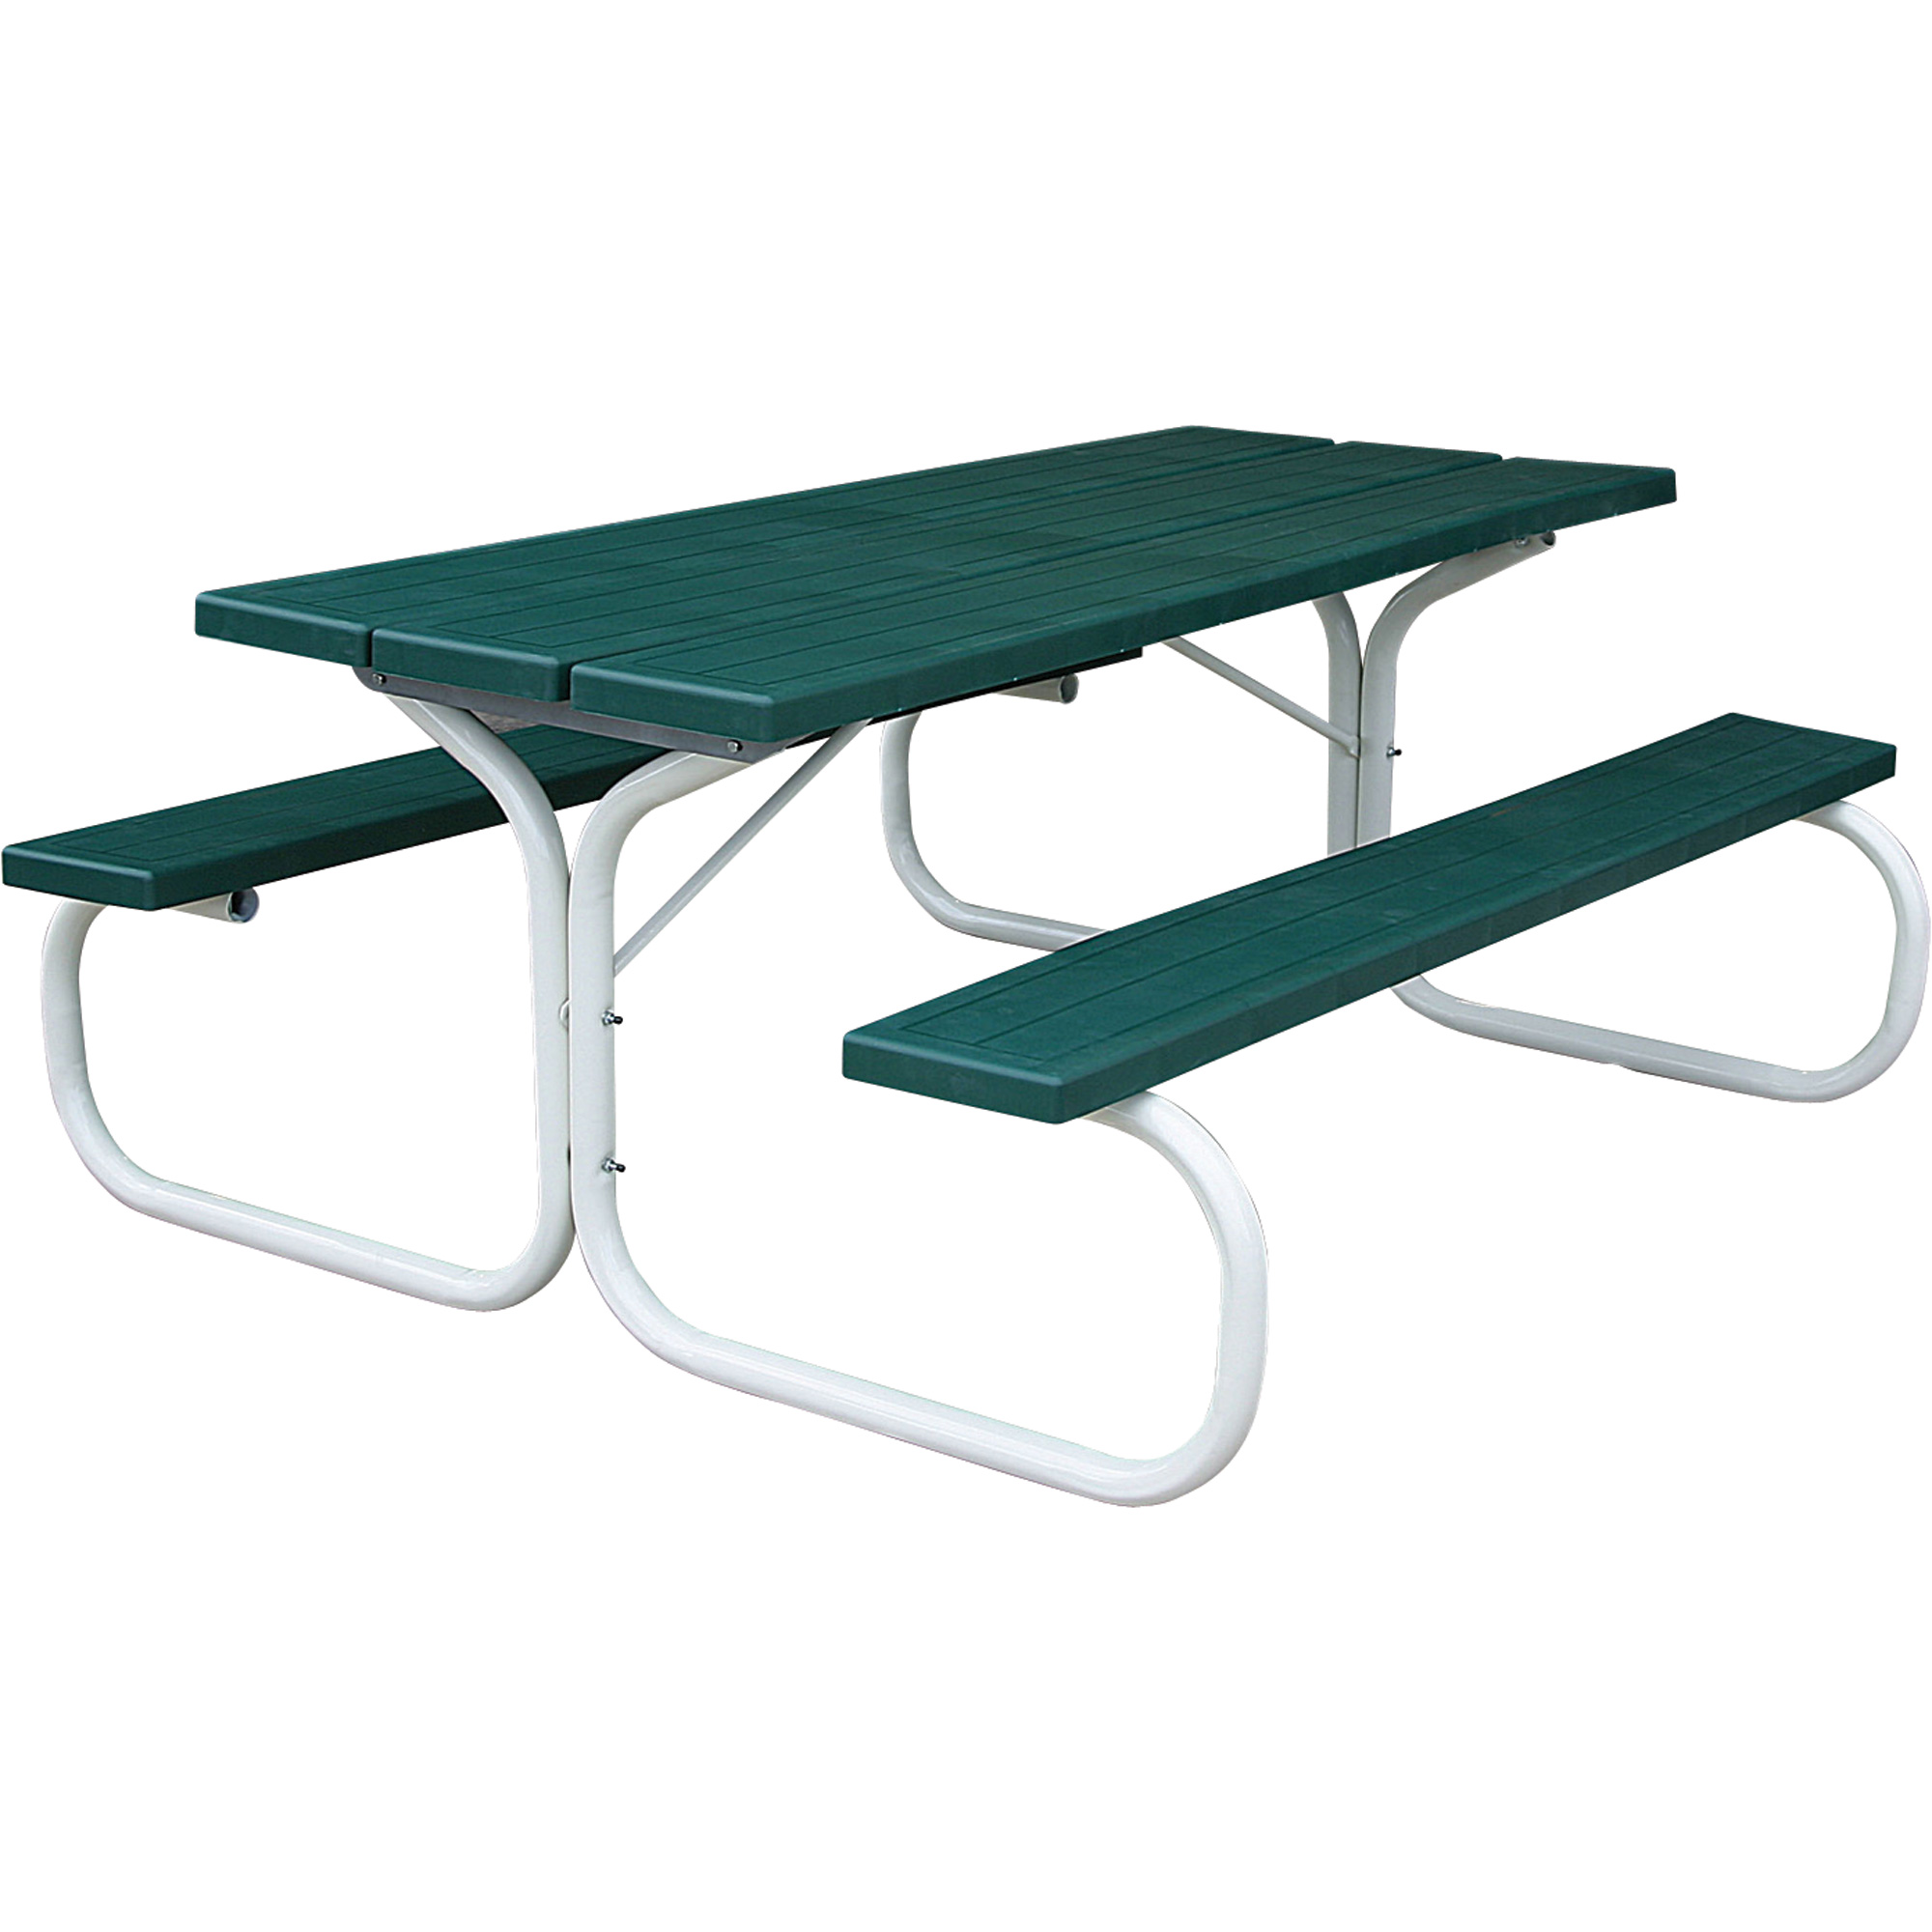 Leisure Time Injection Molded Picnic Table 72in Hunter